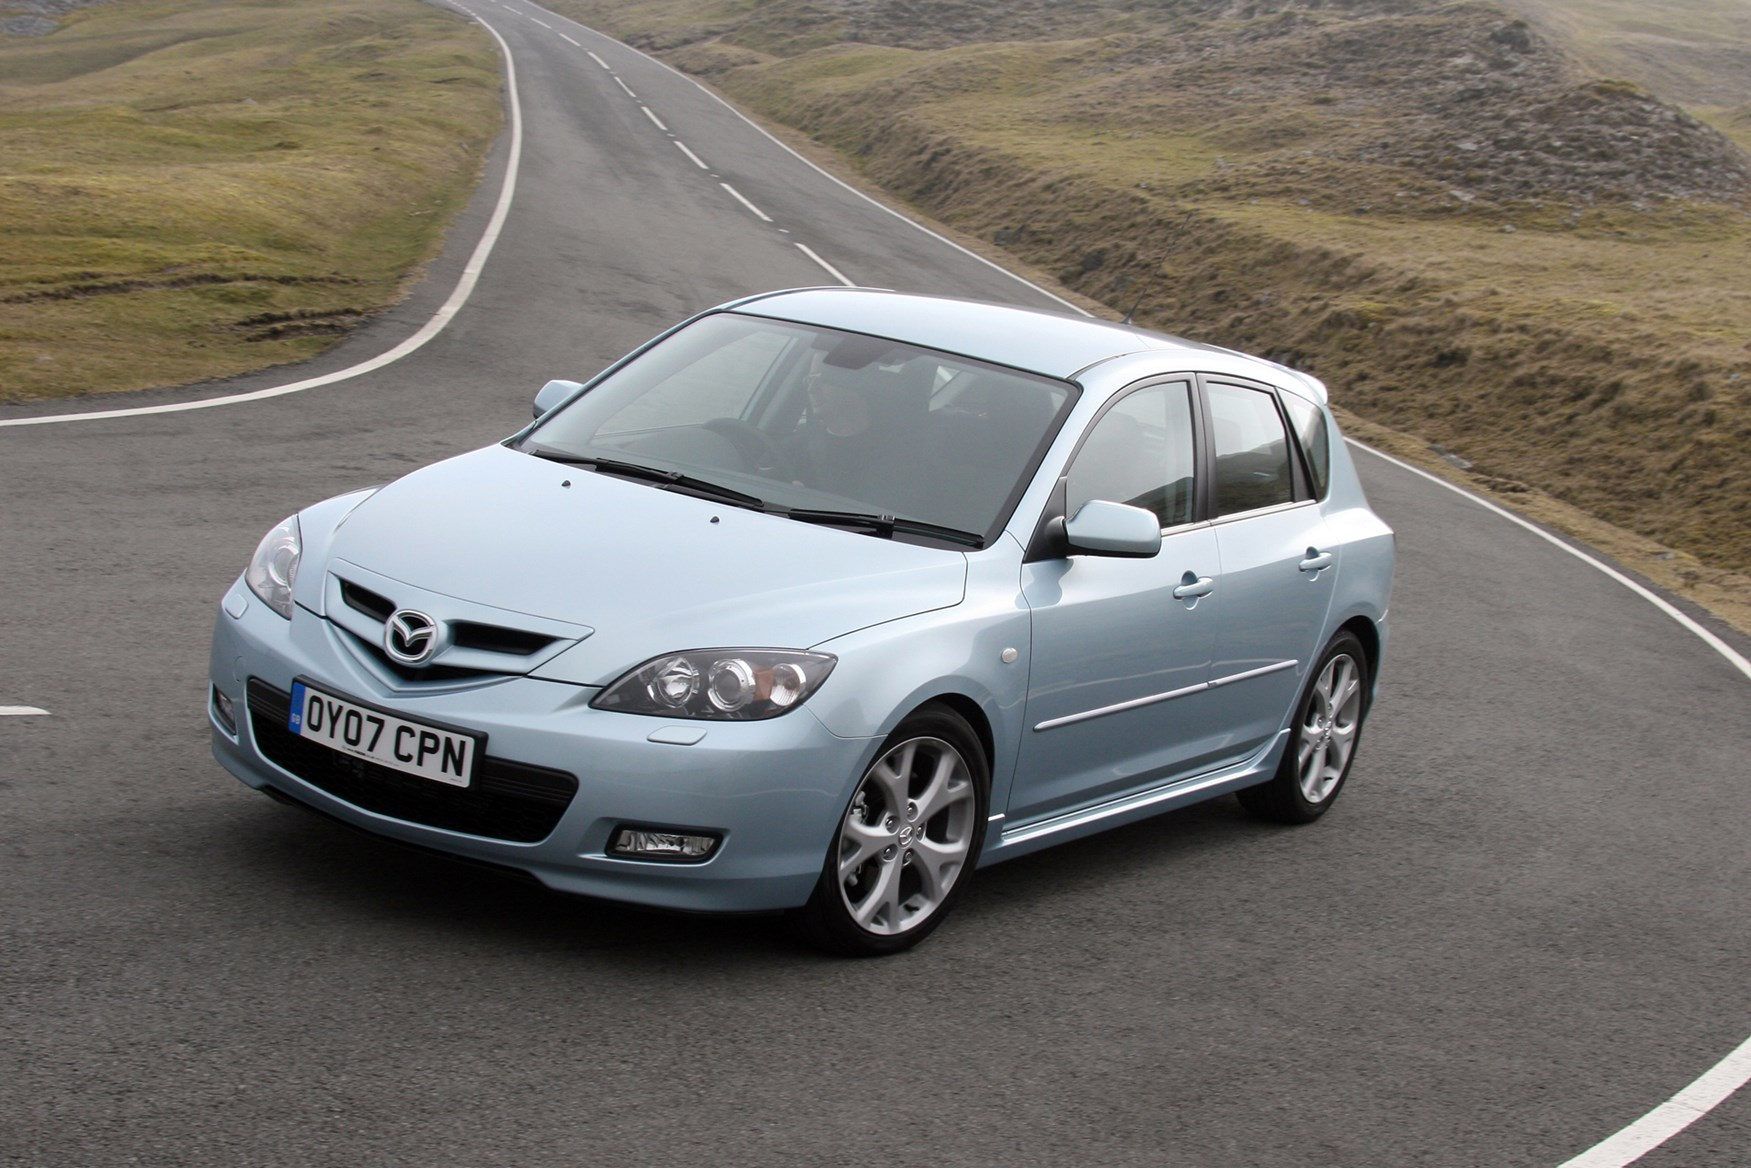 View All Images Of The Mazda 3 Hatchback (04 08)